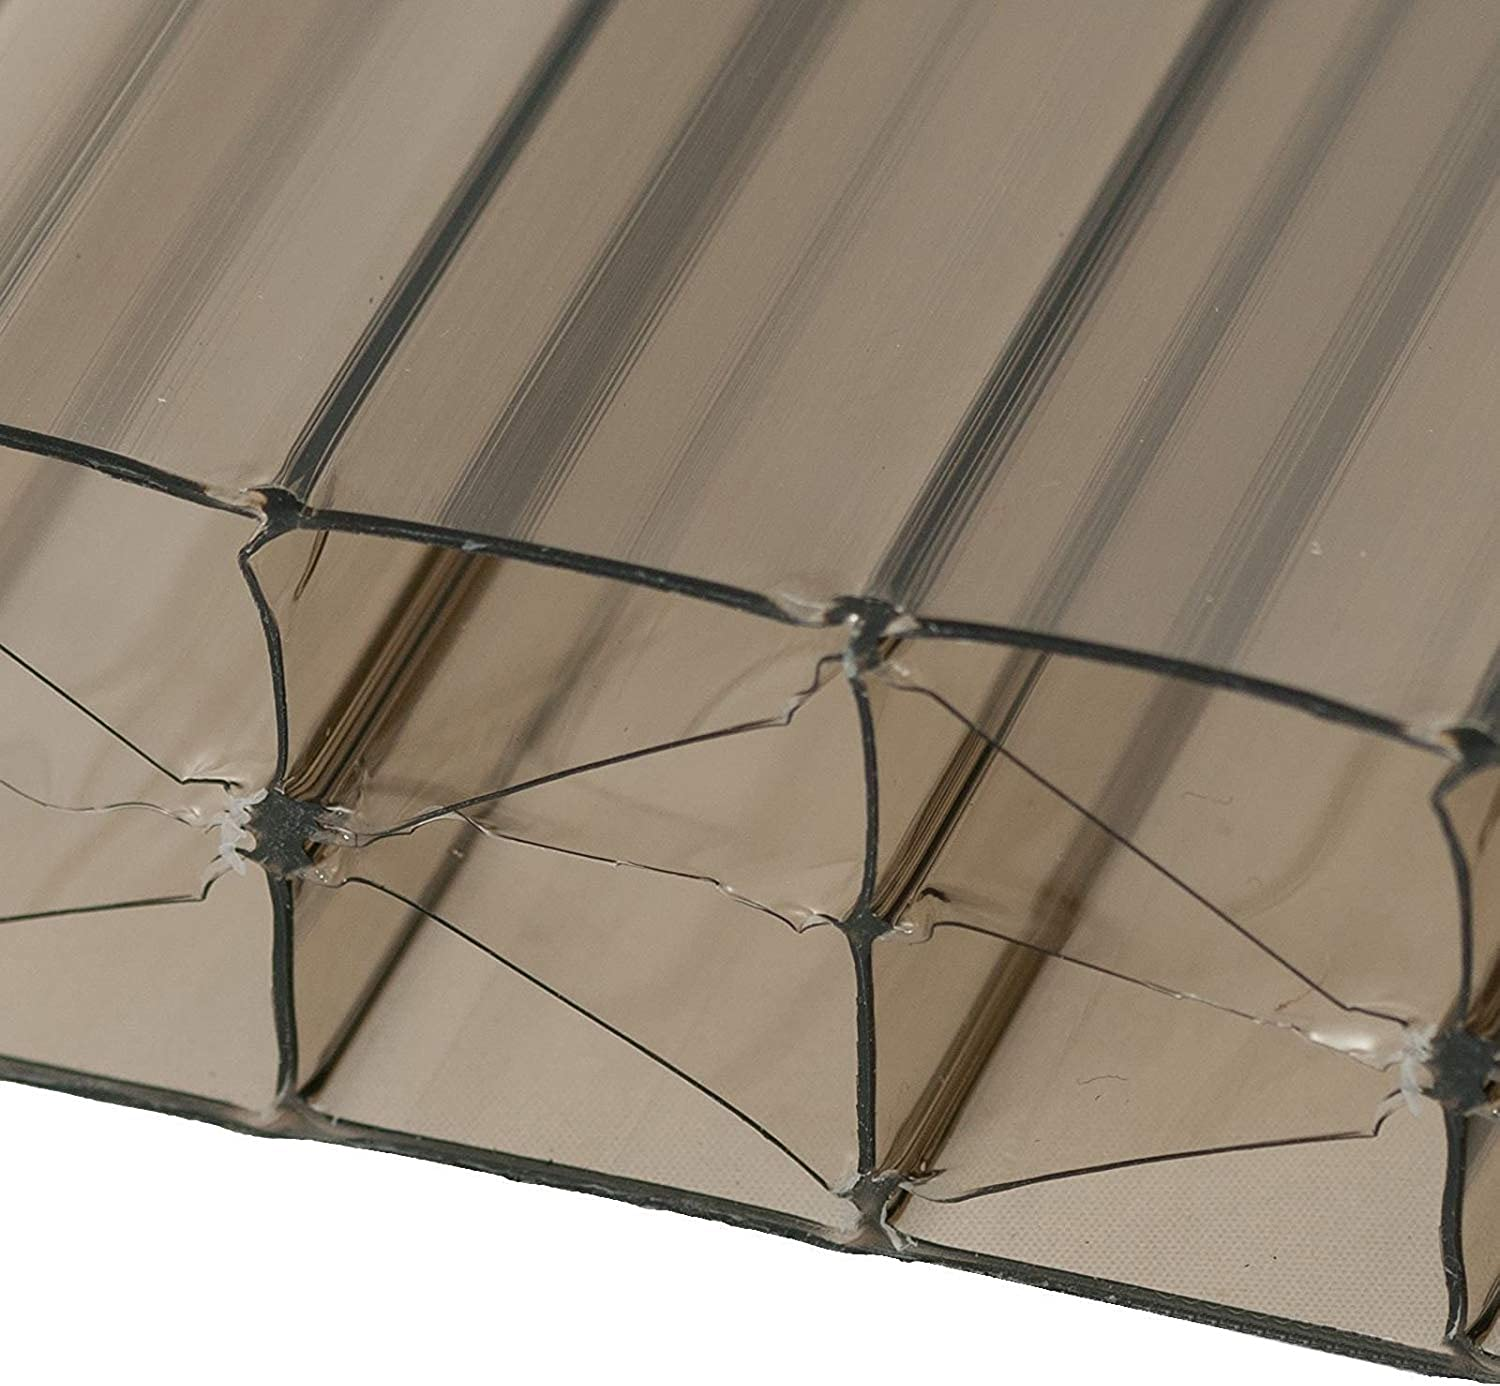 Bronze, 1 x 1.5m (Width x Length) 35mm Multiwall Polycarbonate Sheets Poly Plastic Roof Panel for Leanto Canopy Conservatory